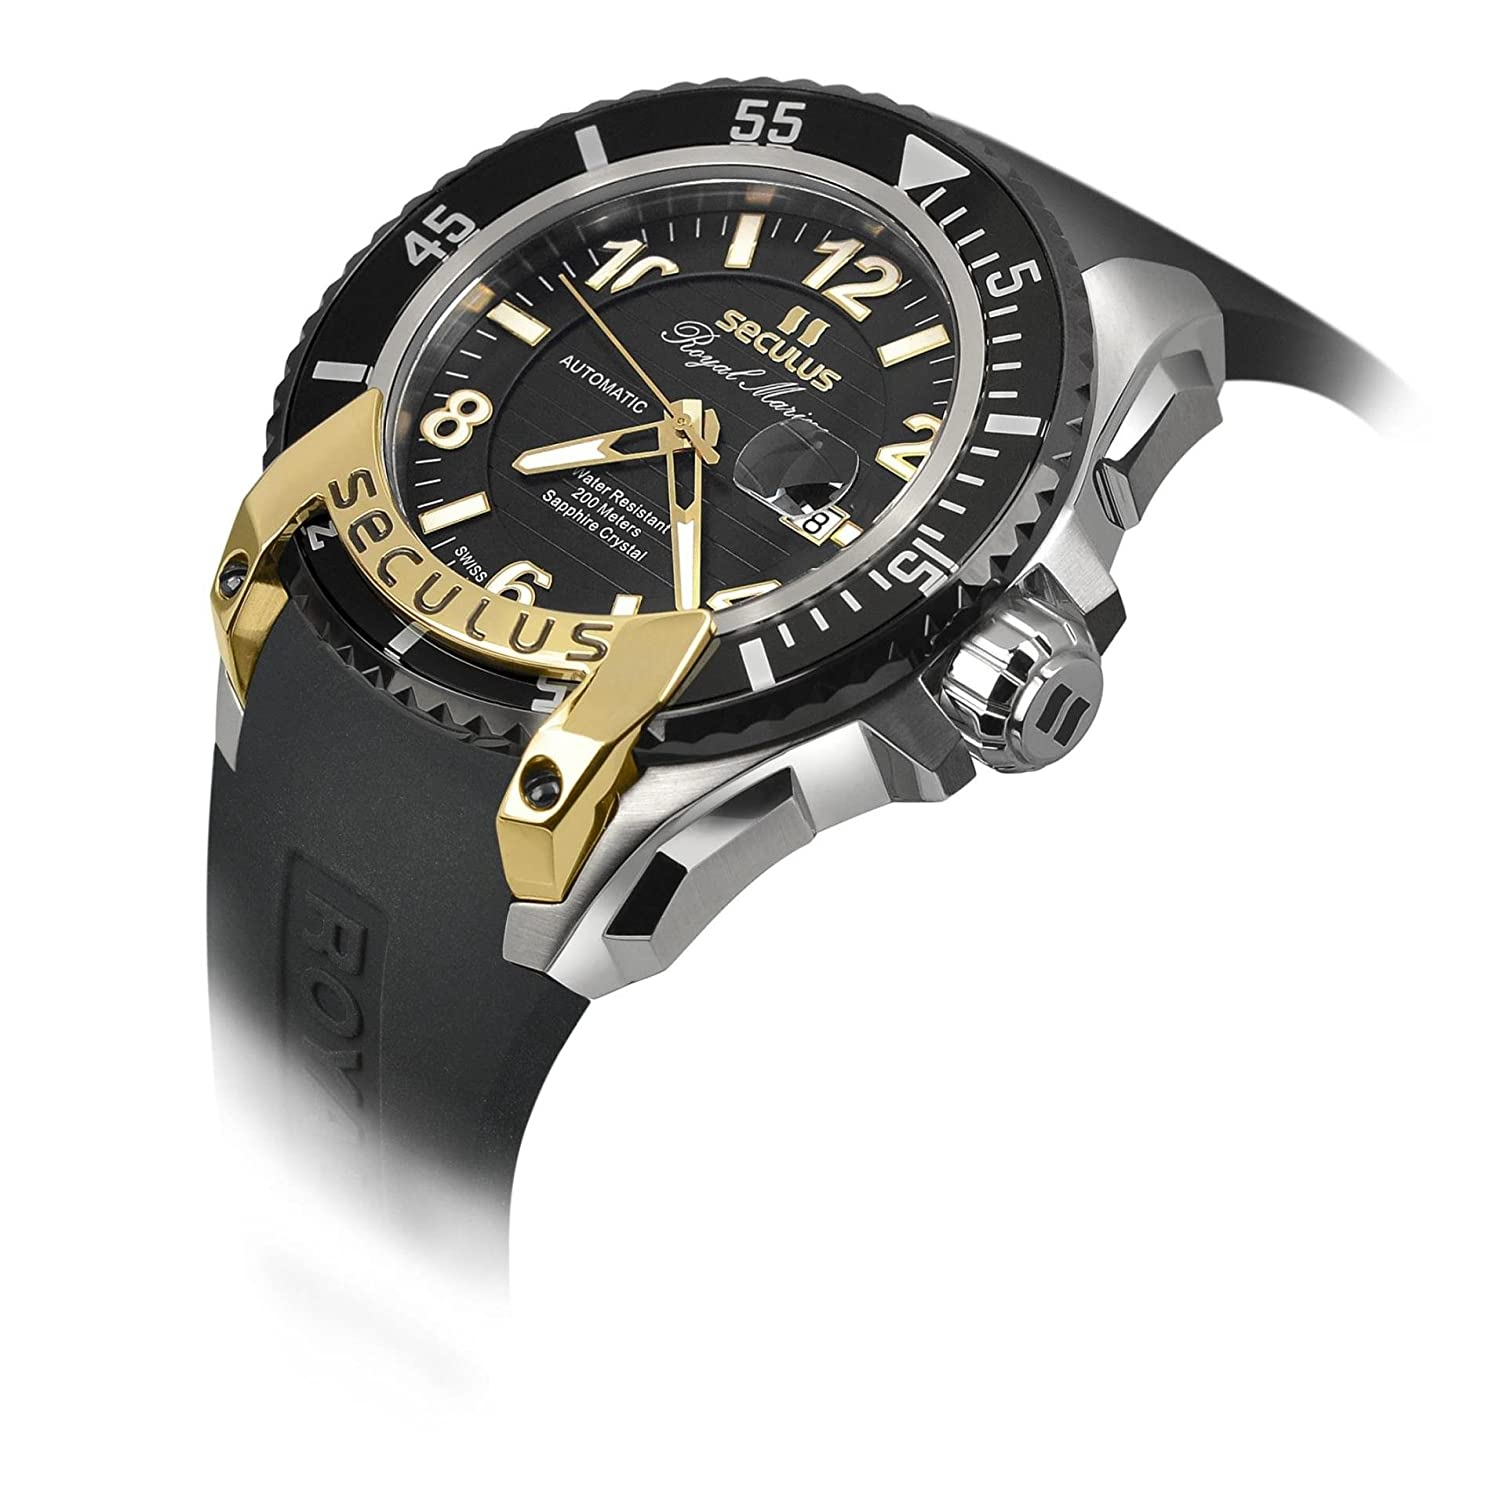 76cce5a35af SECULUS MEN S ROYAL MARINE FLAGSHIP 48MM AUTOMATIC WATCH 3441.7.2824 M SSY B   Amazon.it  Orologi